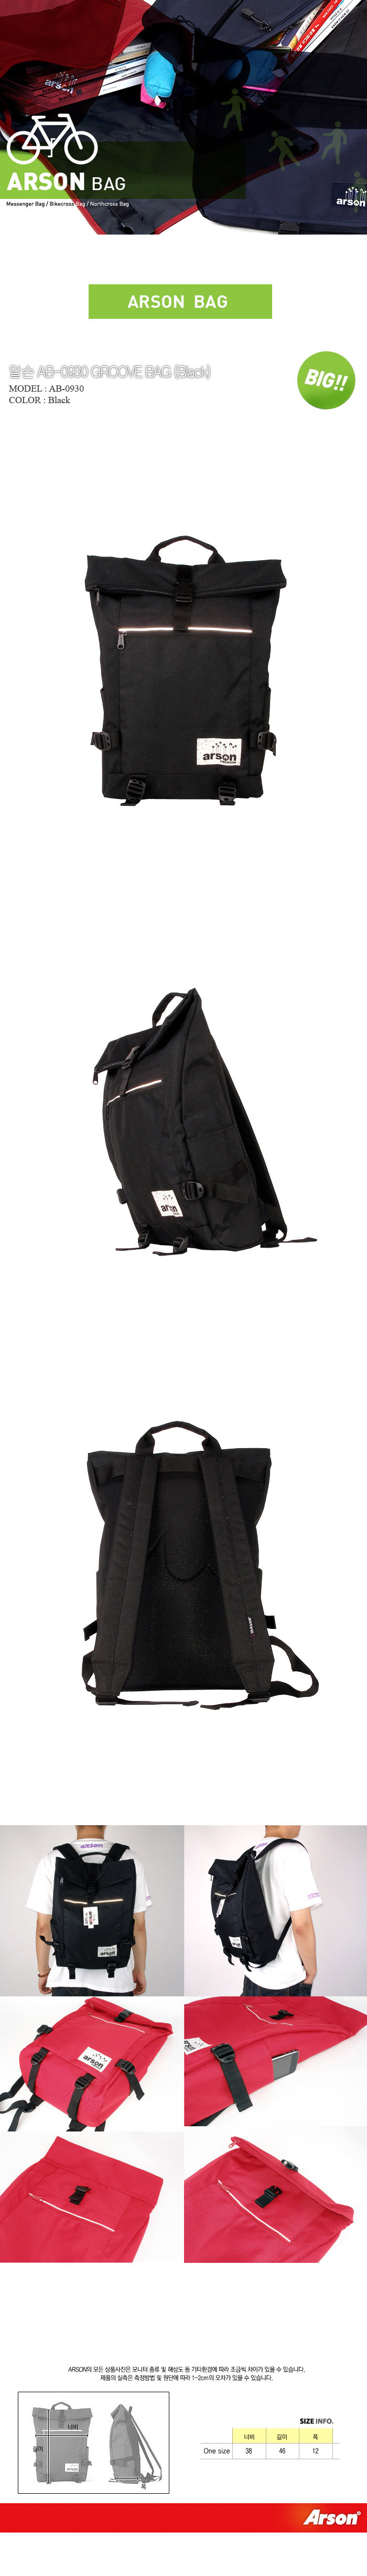 [ ARSON ] AB-0930 (Black)/Backpack School Bag